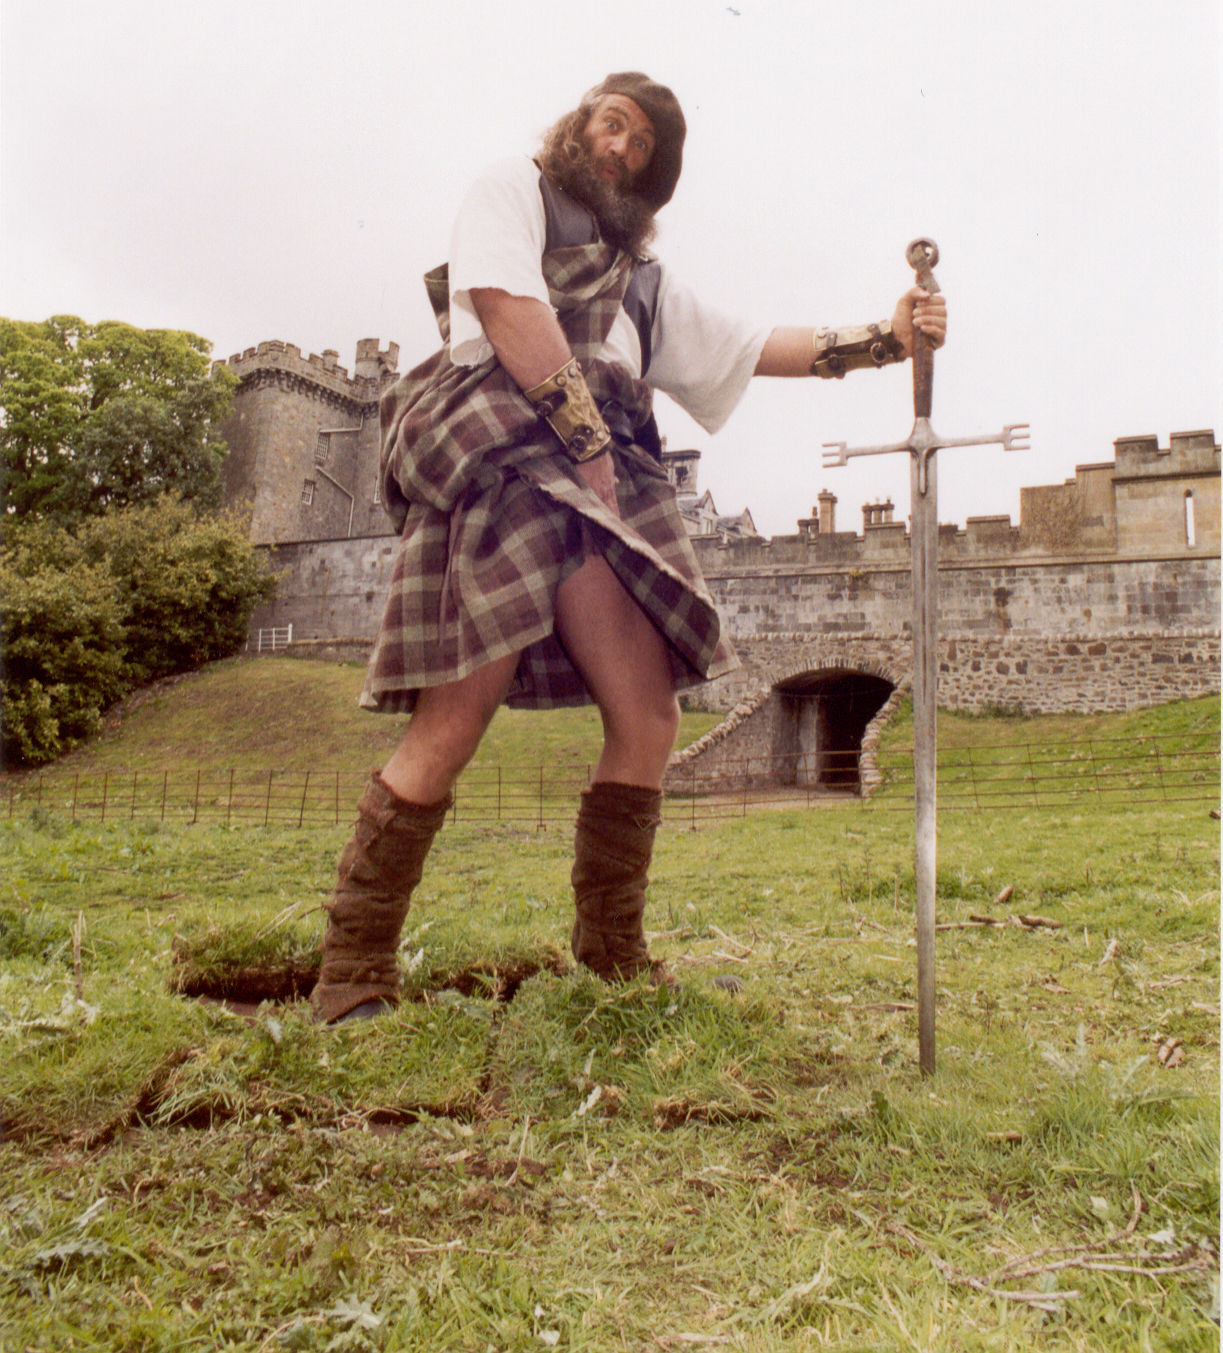 Highlander as Marilyn